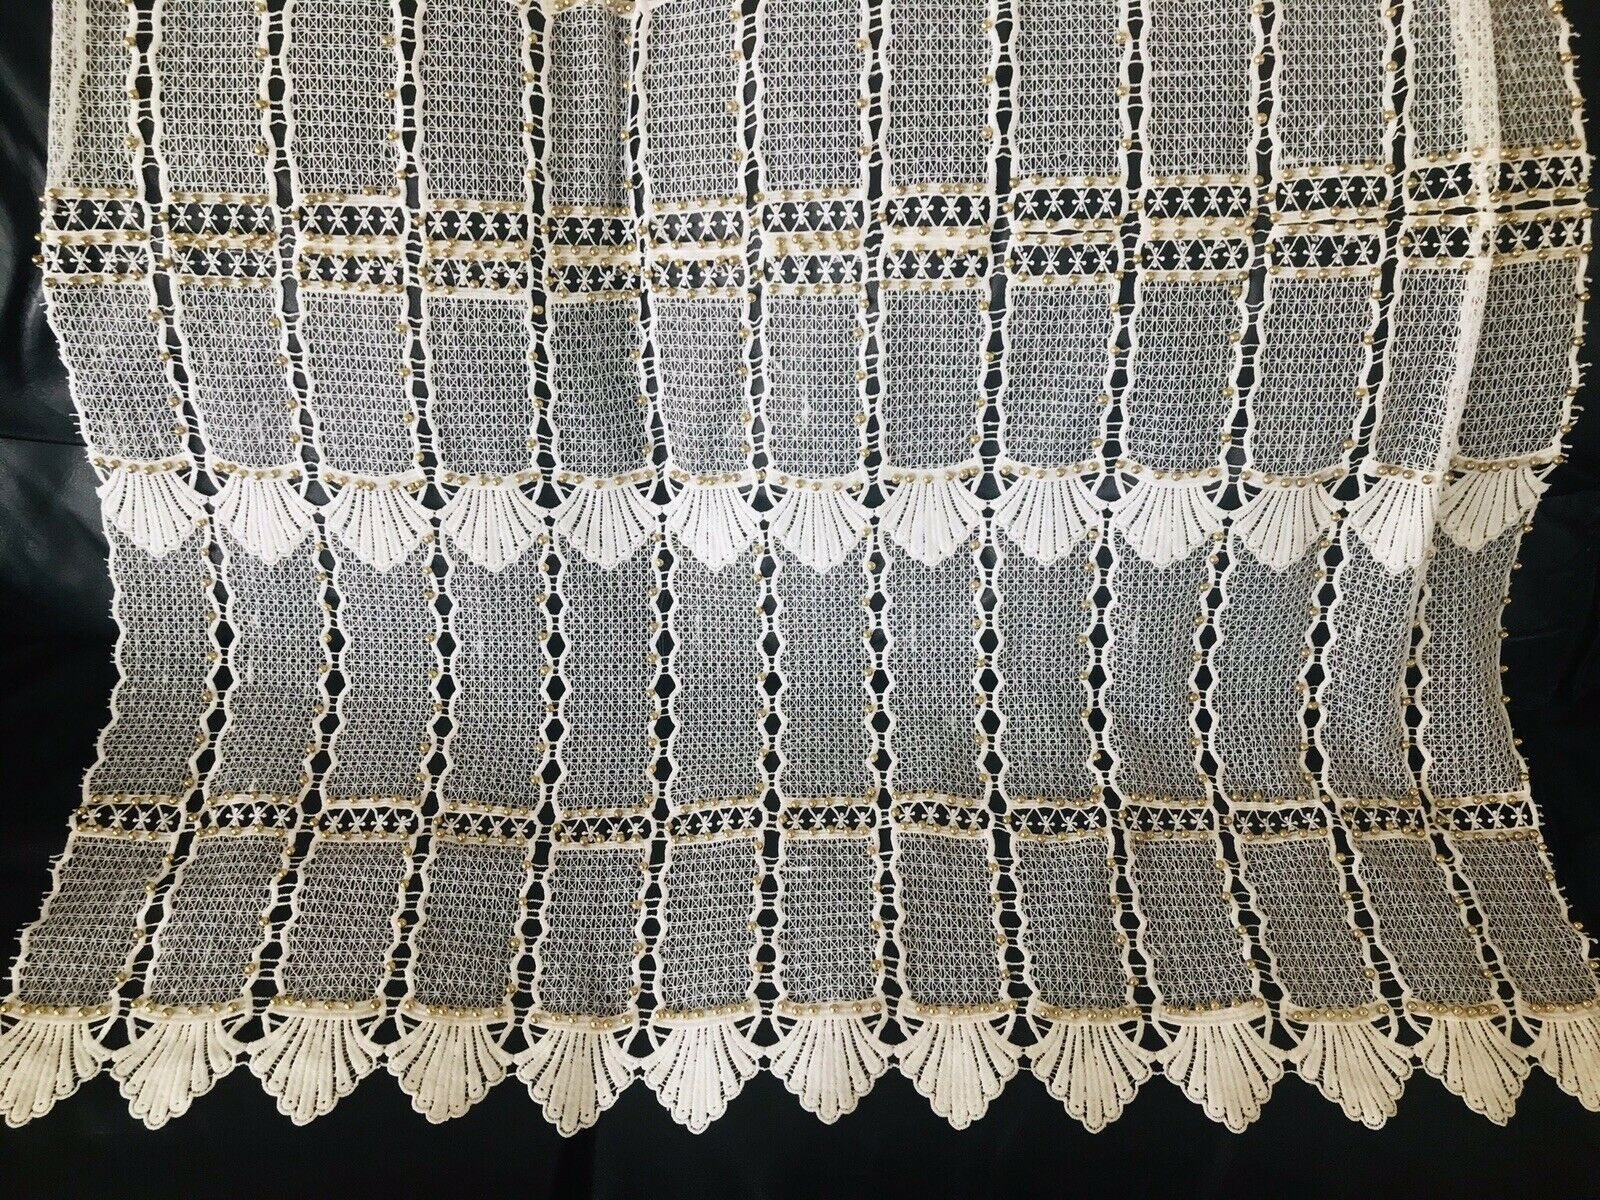 Novelty Gold Studded Beads Scalloped Edge Lace Crochet Fabric- By The Yard White